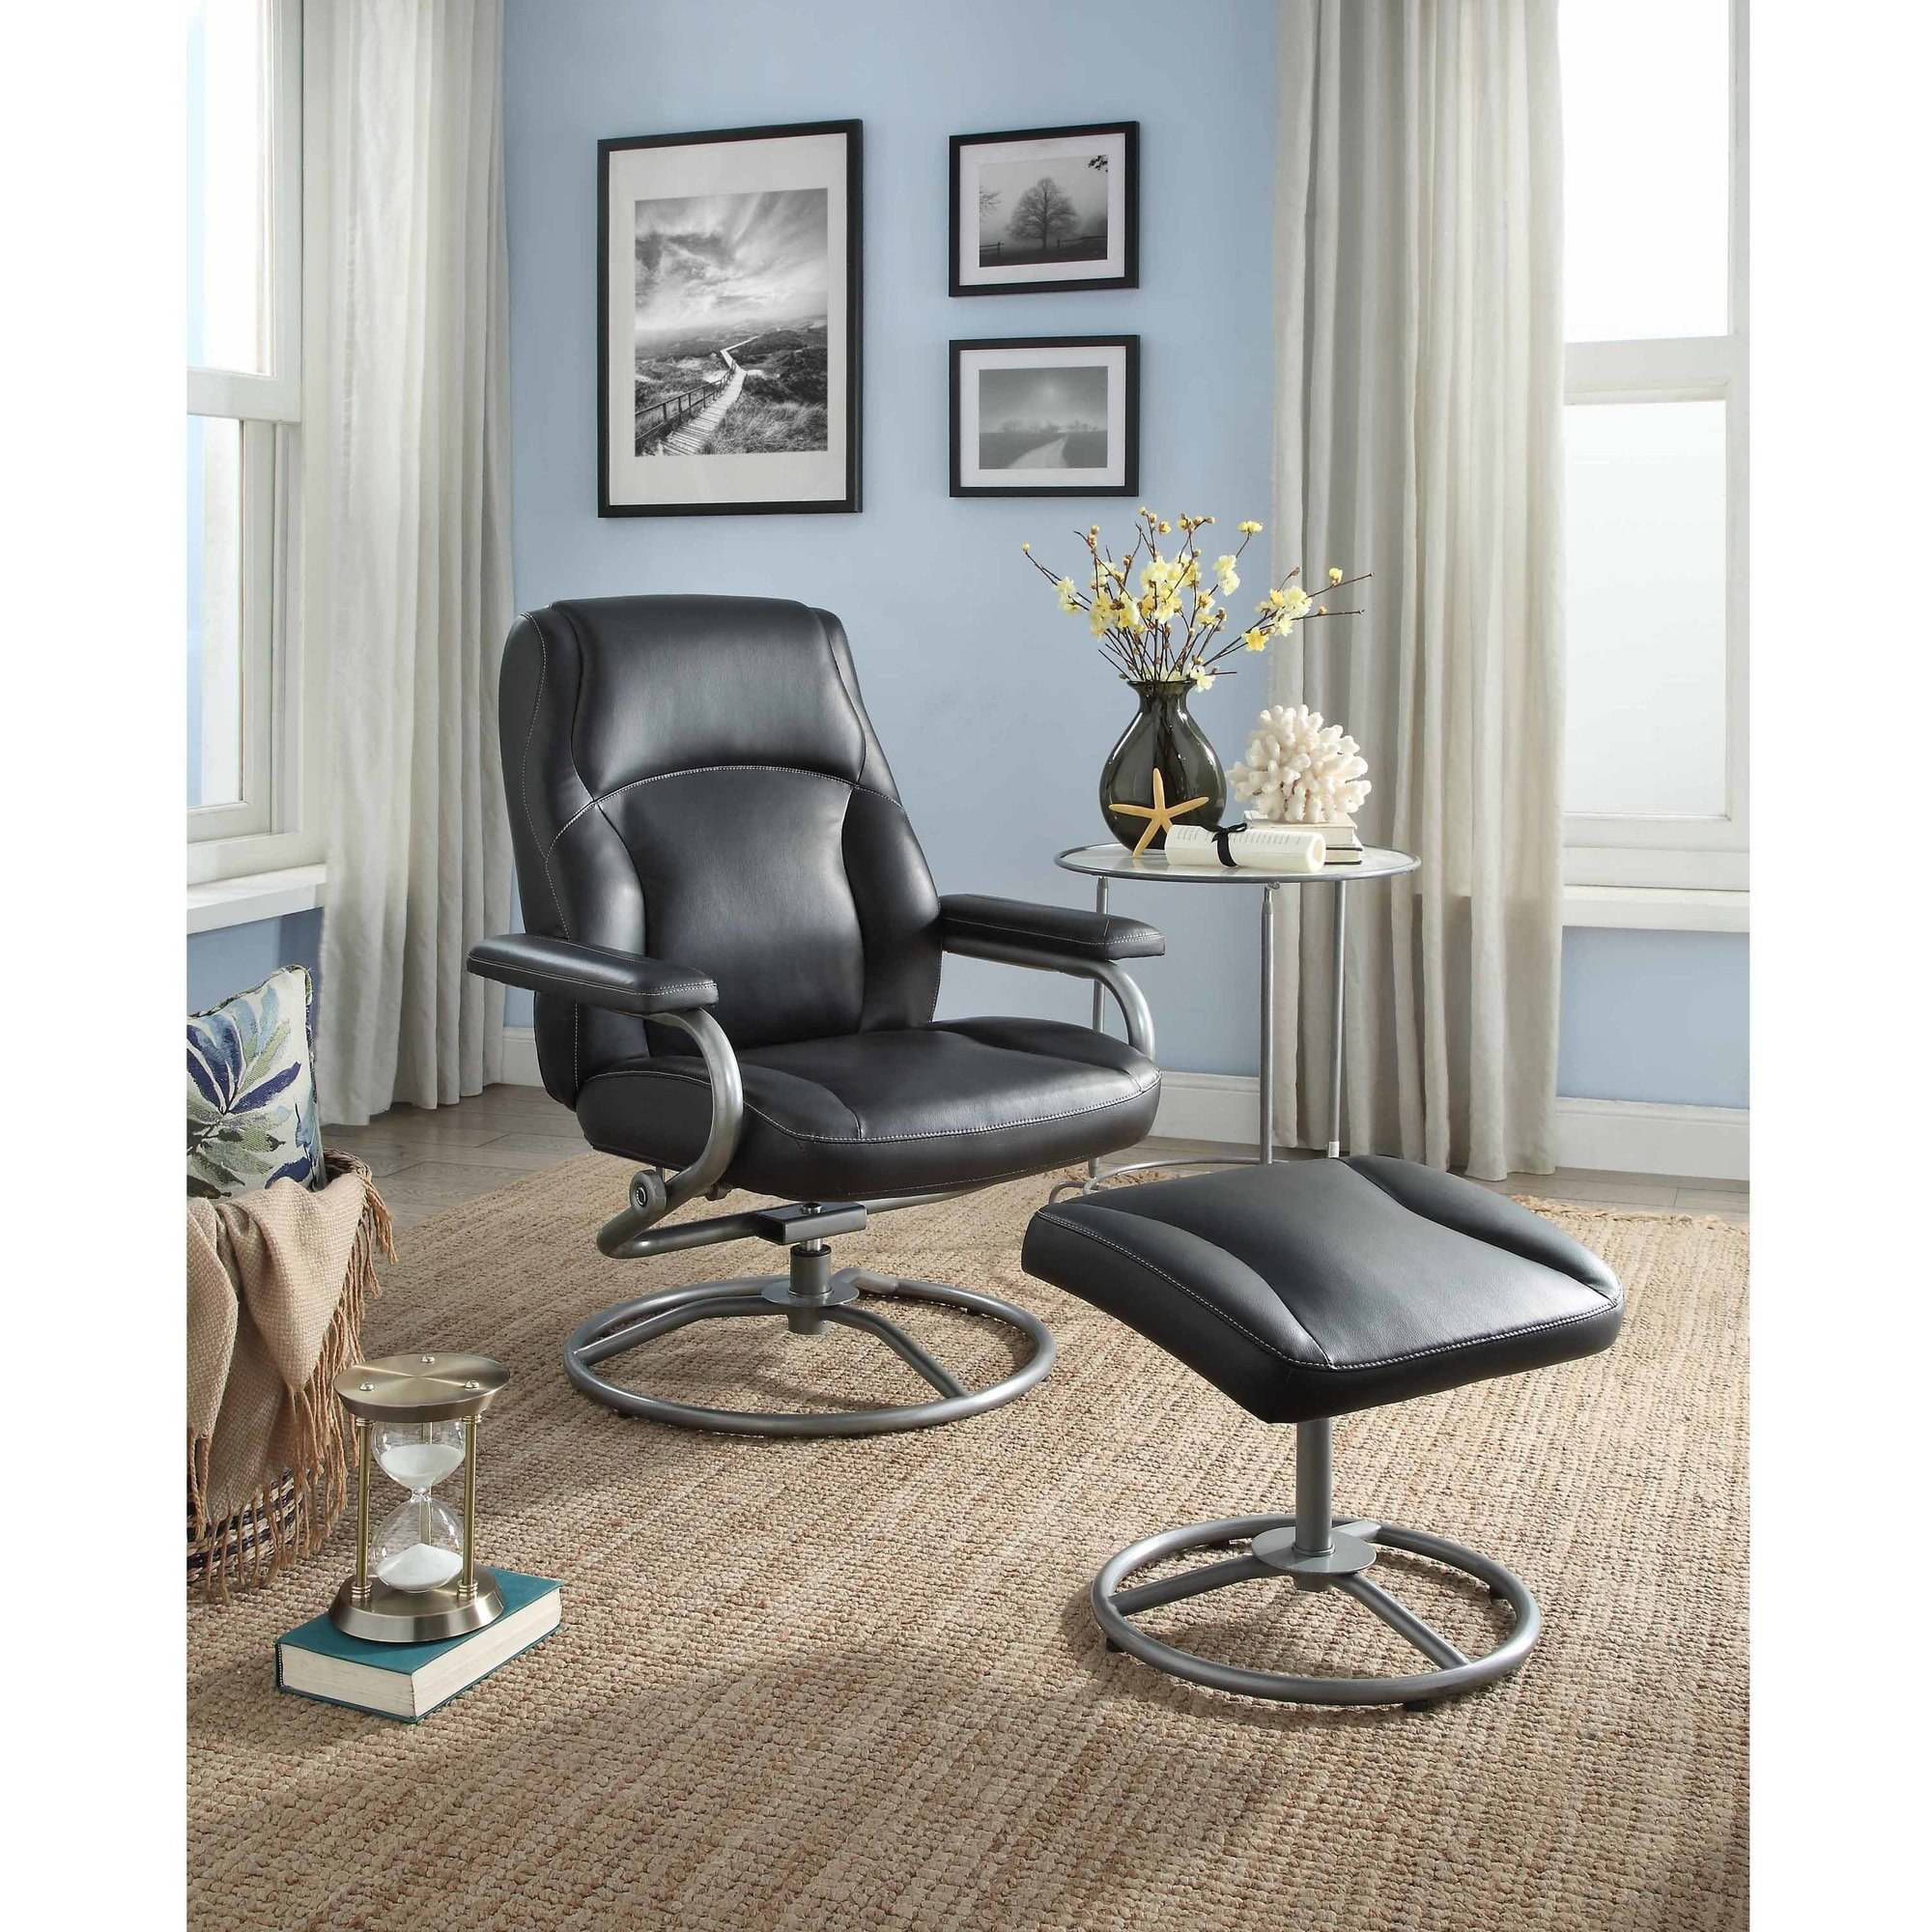 Mainstays Plush Pillowed Recliner Swivel Chair and Ottoman Set